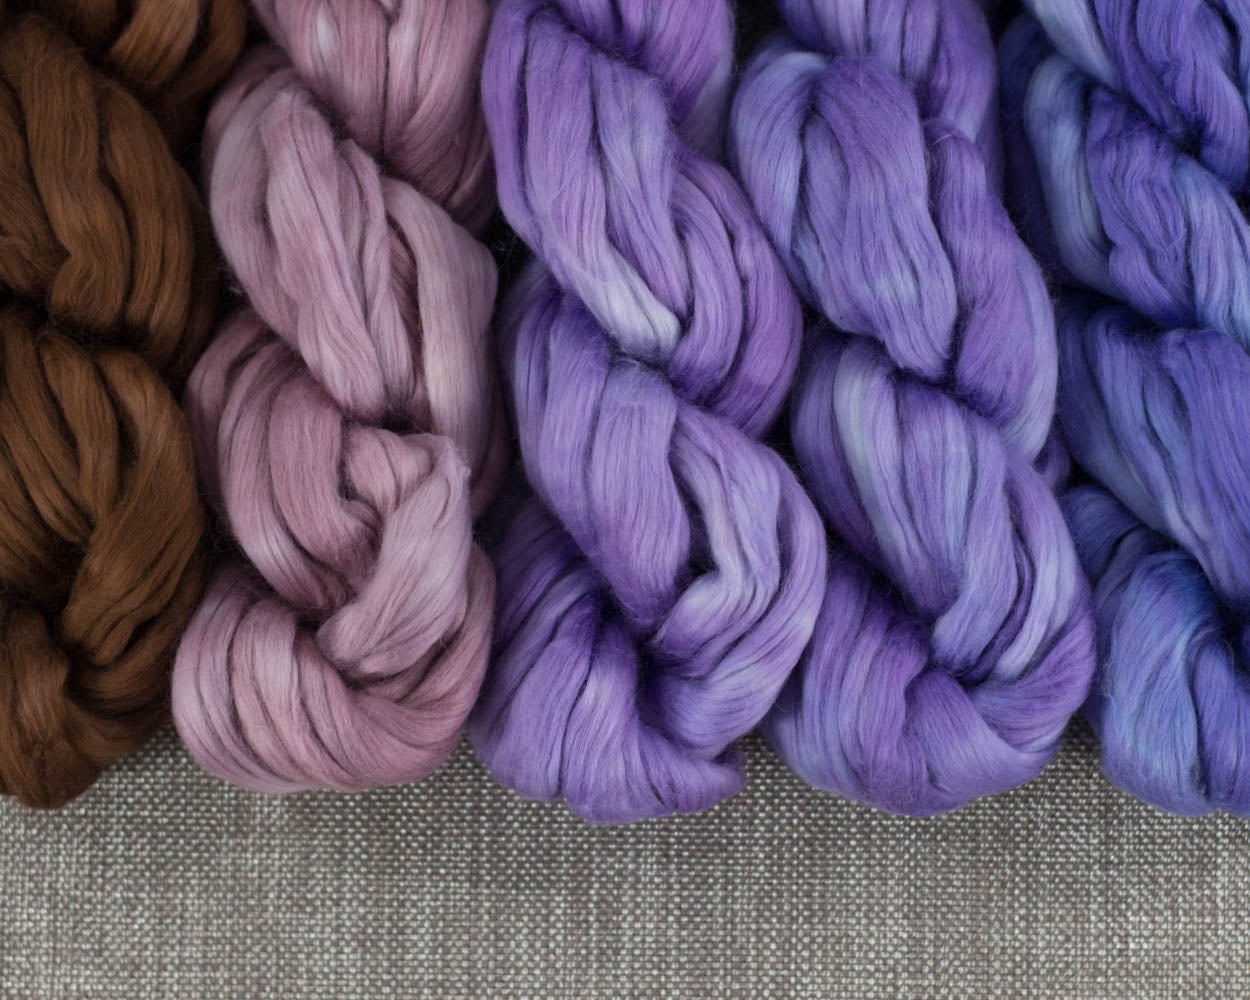 Aster Fields - Buchanan Fiber Co.